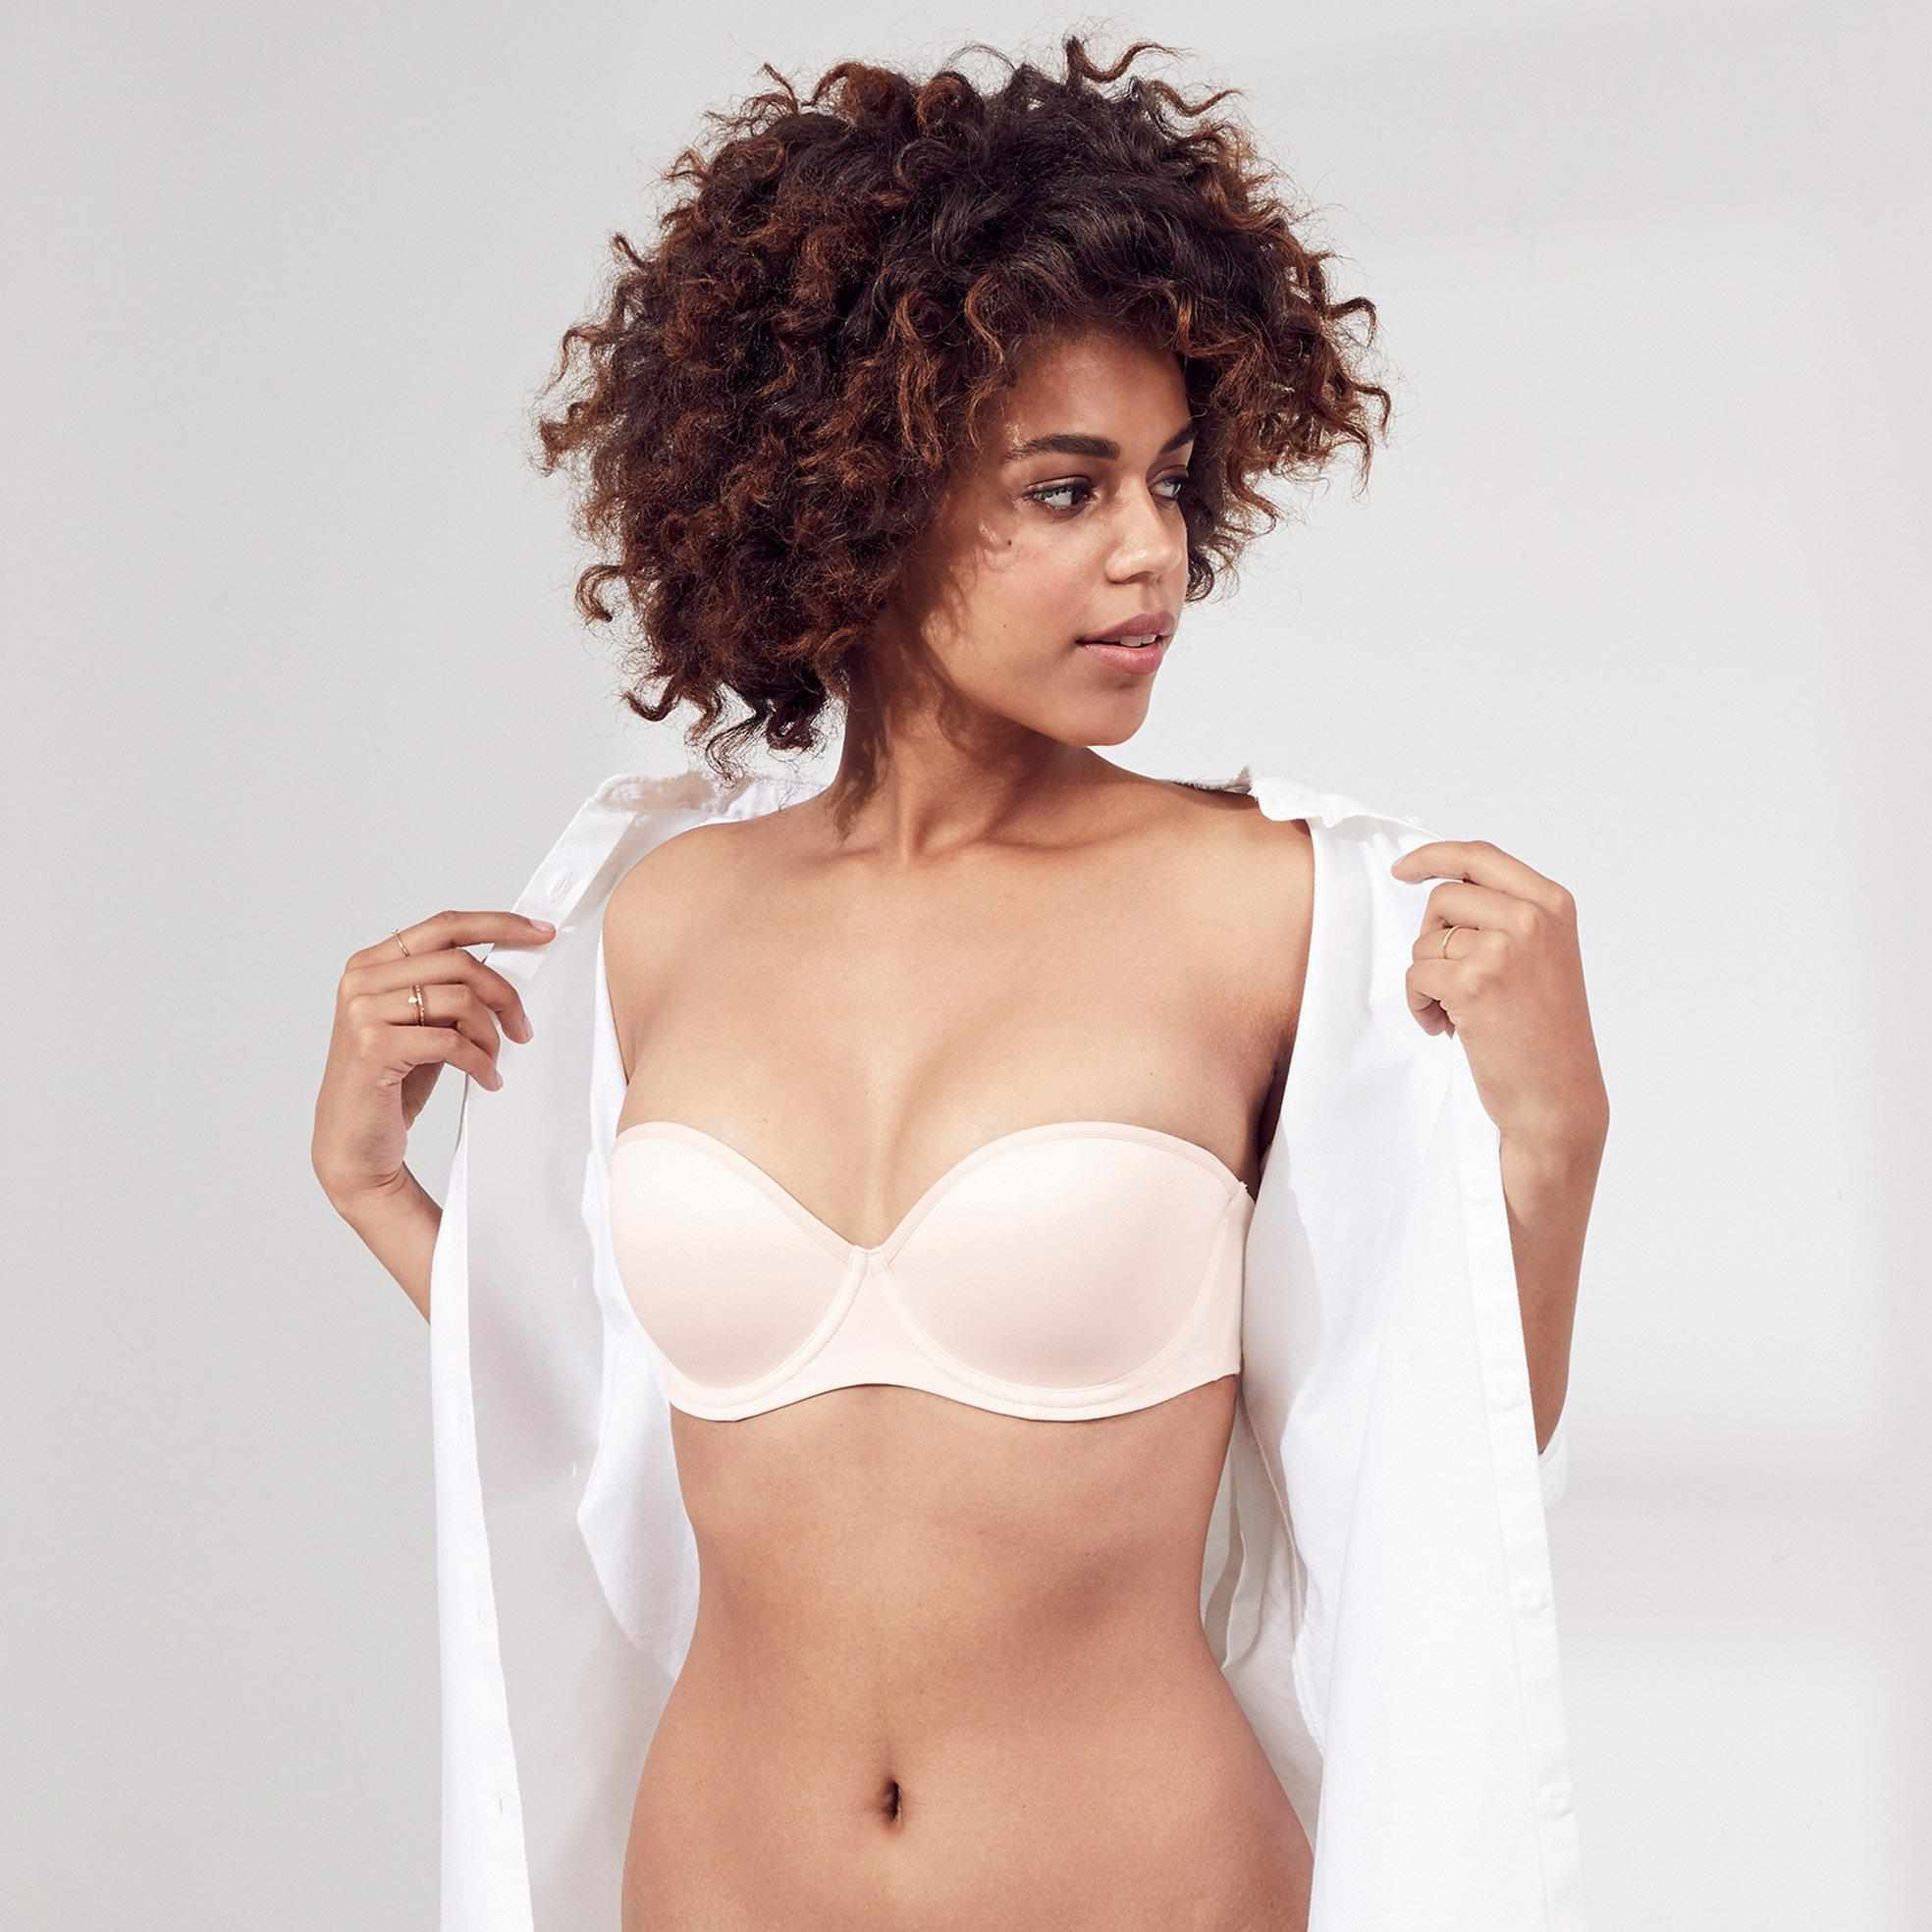 976dacfd535 These Are the Best Strapless Bras to Go With Your Wedding Dress